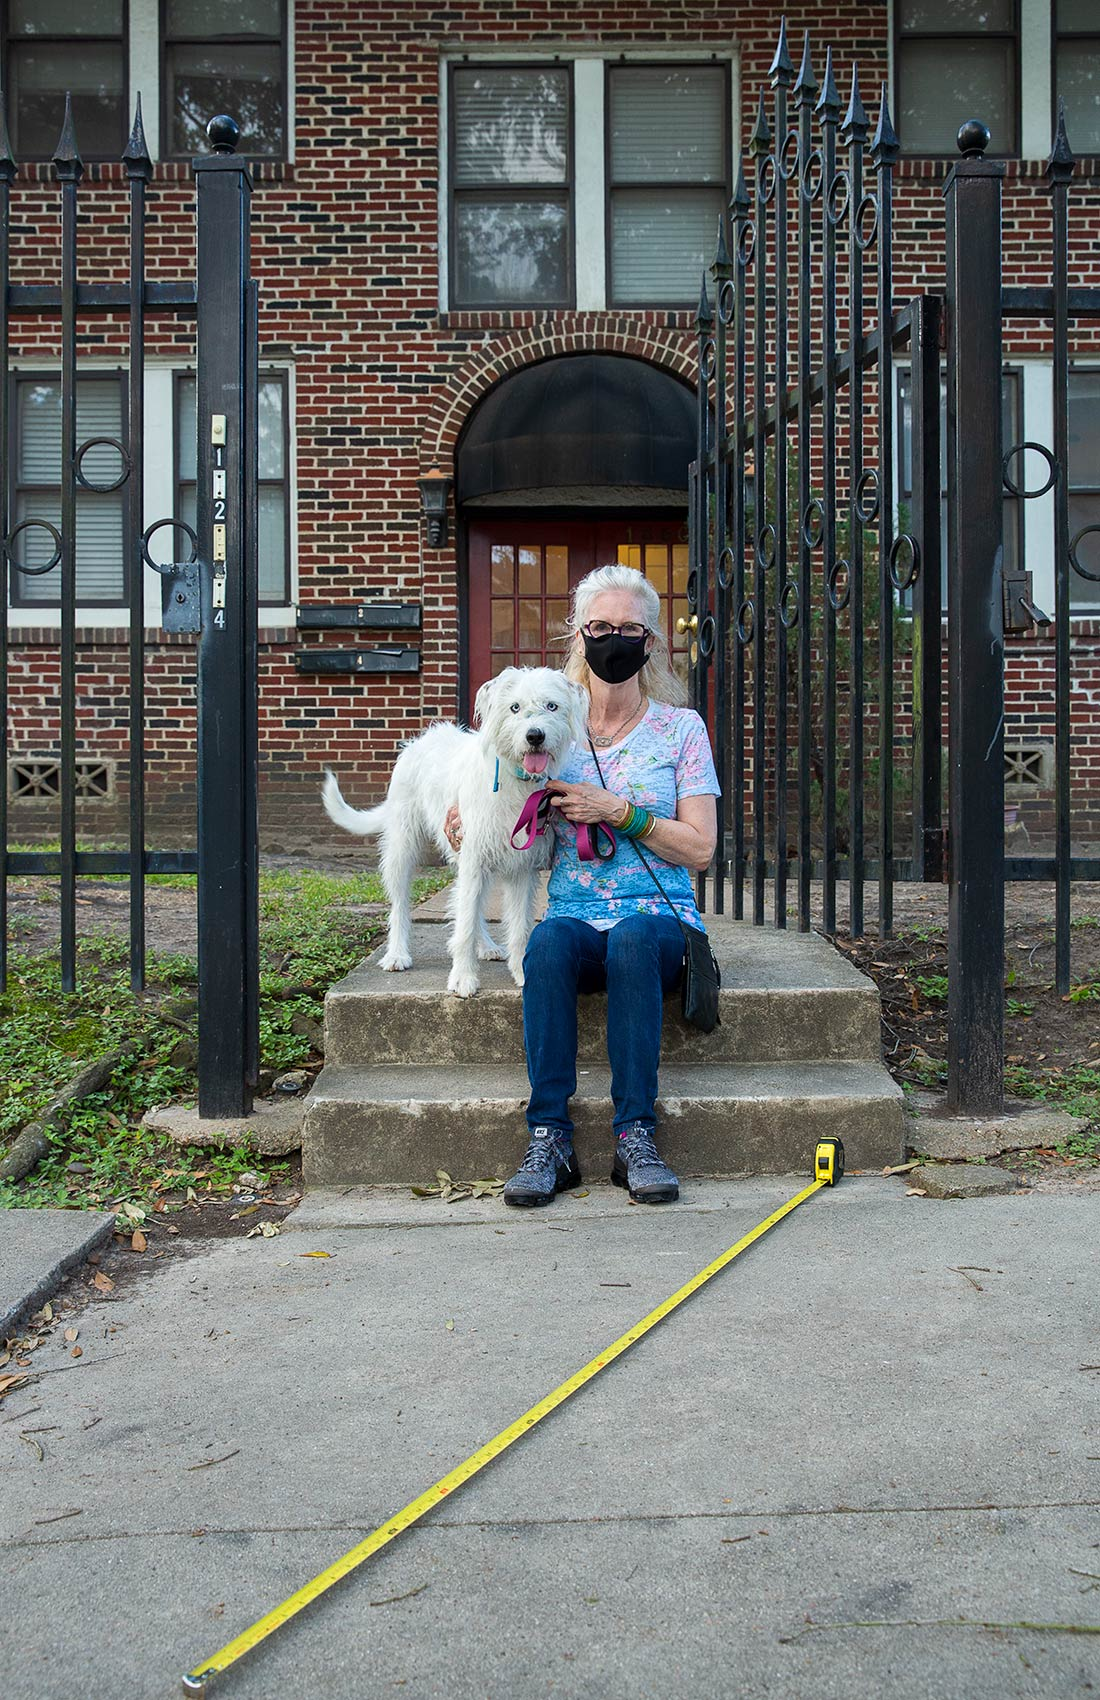 A masked woman and her dog sit on her porch with a long tape measure as a symbol of Covid-19 social distance